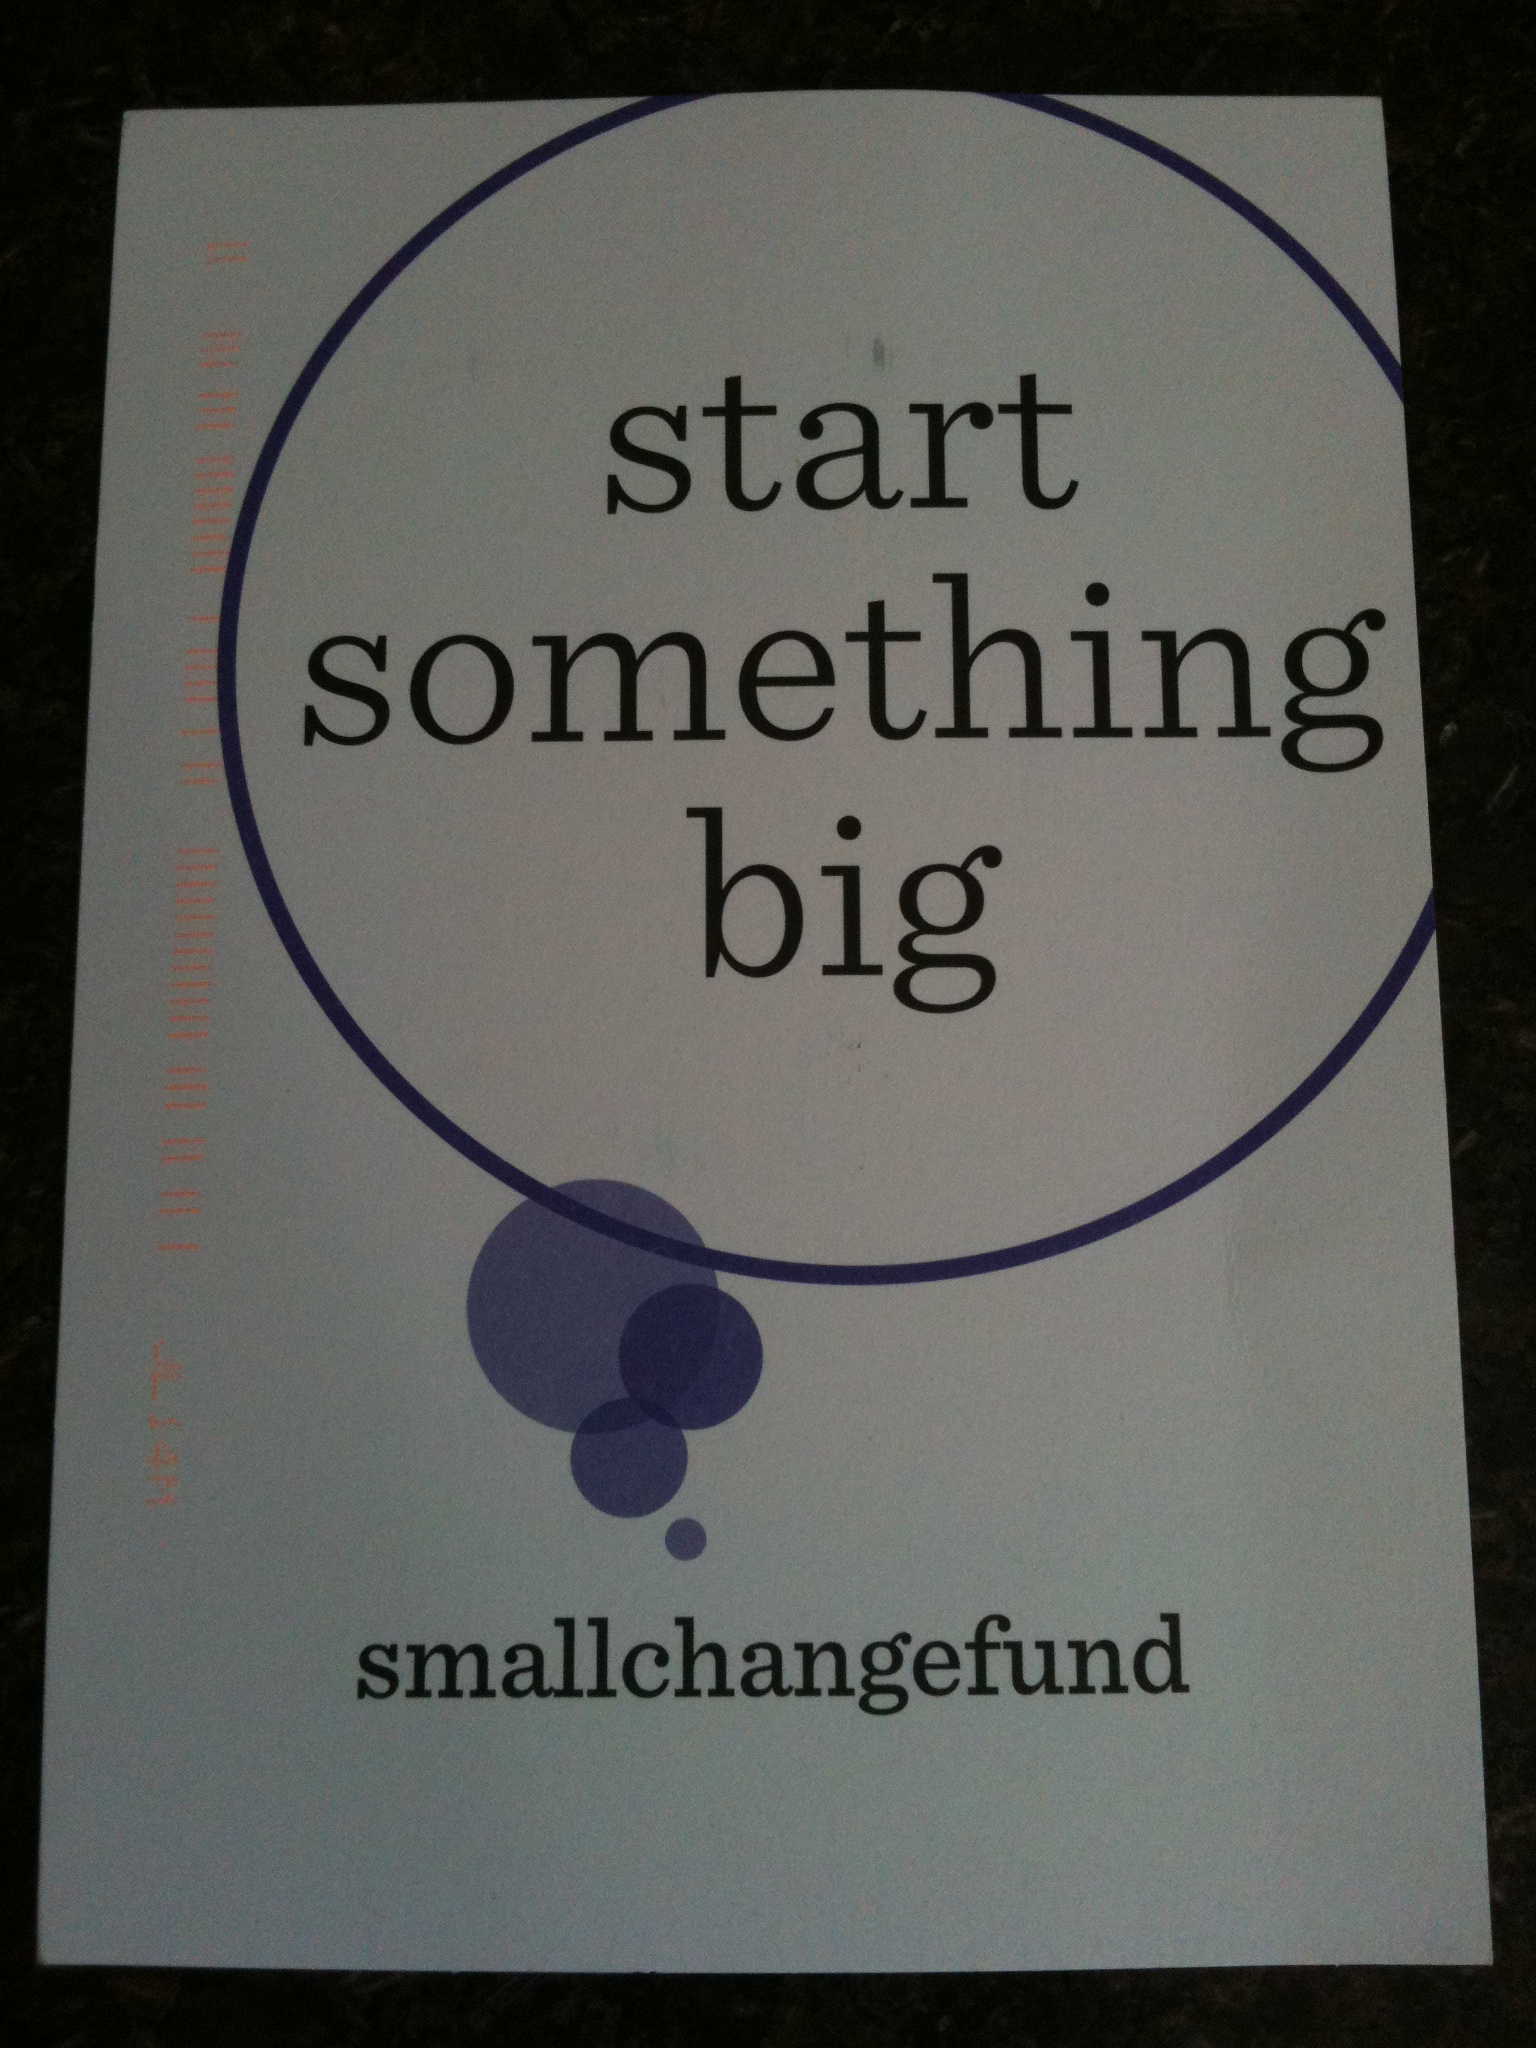 How does it feel? Update: Small Change Fund Thank You Notes